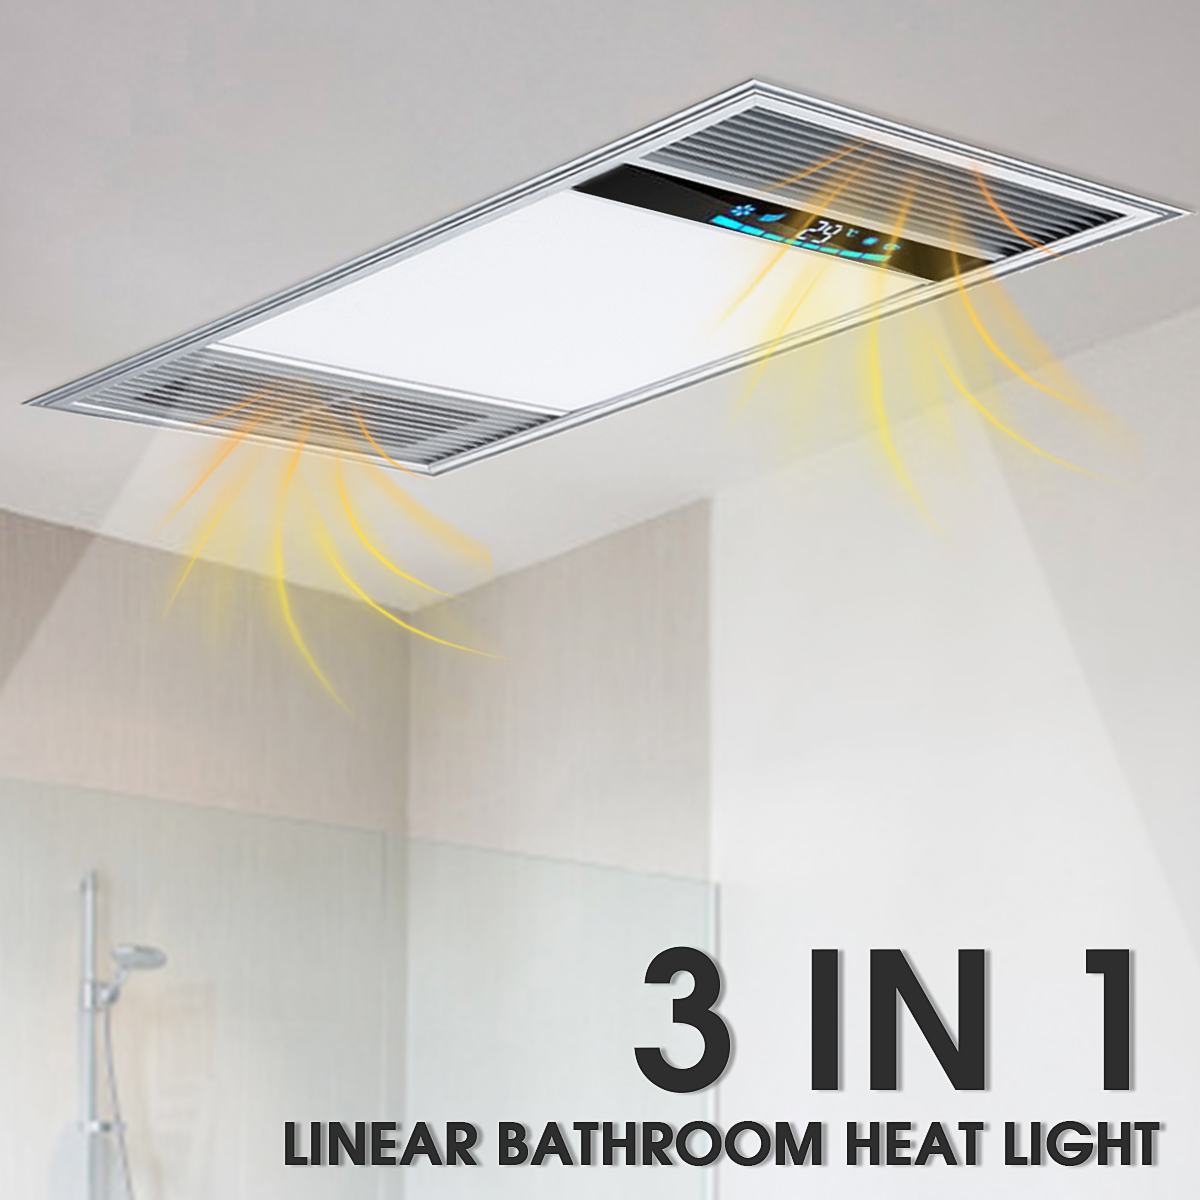 220V Intelligent Multi-function Smart  Warm Integrated Embedded Ceiling Triple Bathroom Heater Electric Thickness Home Heater220V Intelligent Multi-function Smart  Warm Integrated Embedded Ceiling Triple Bathroom Heater Electric Thickness Home Heater